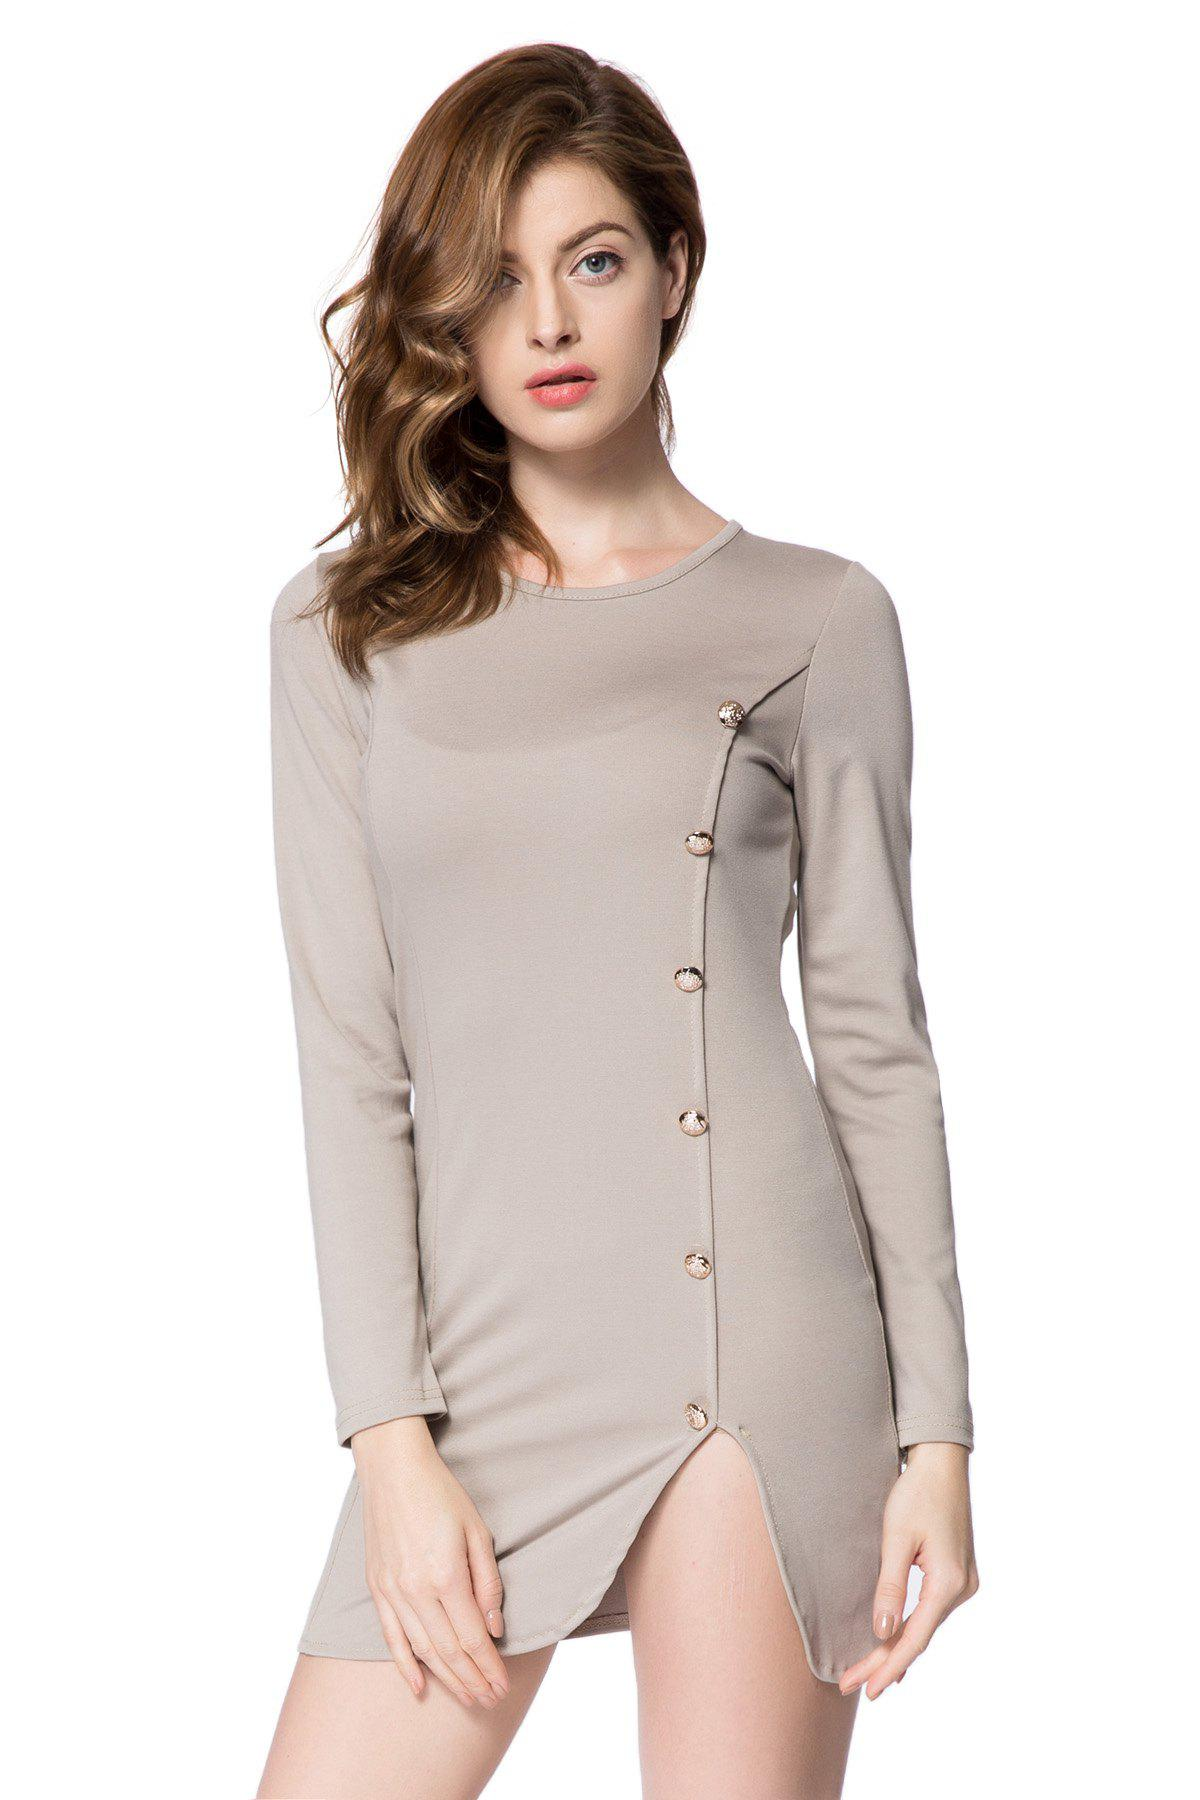 Solid Color Long Sleeve Round Collar Buttons Design Packet Buttock Dress - LIGHT GRAY M